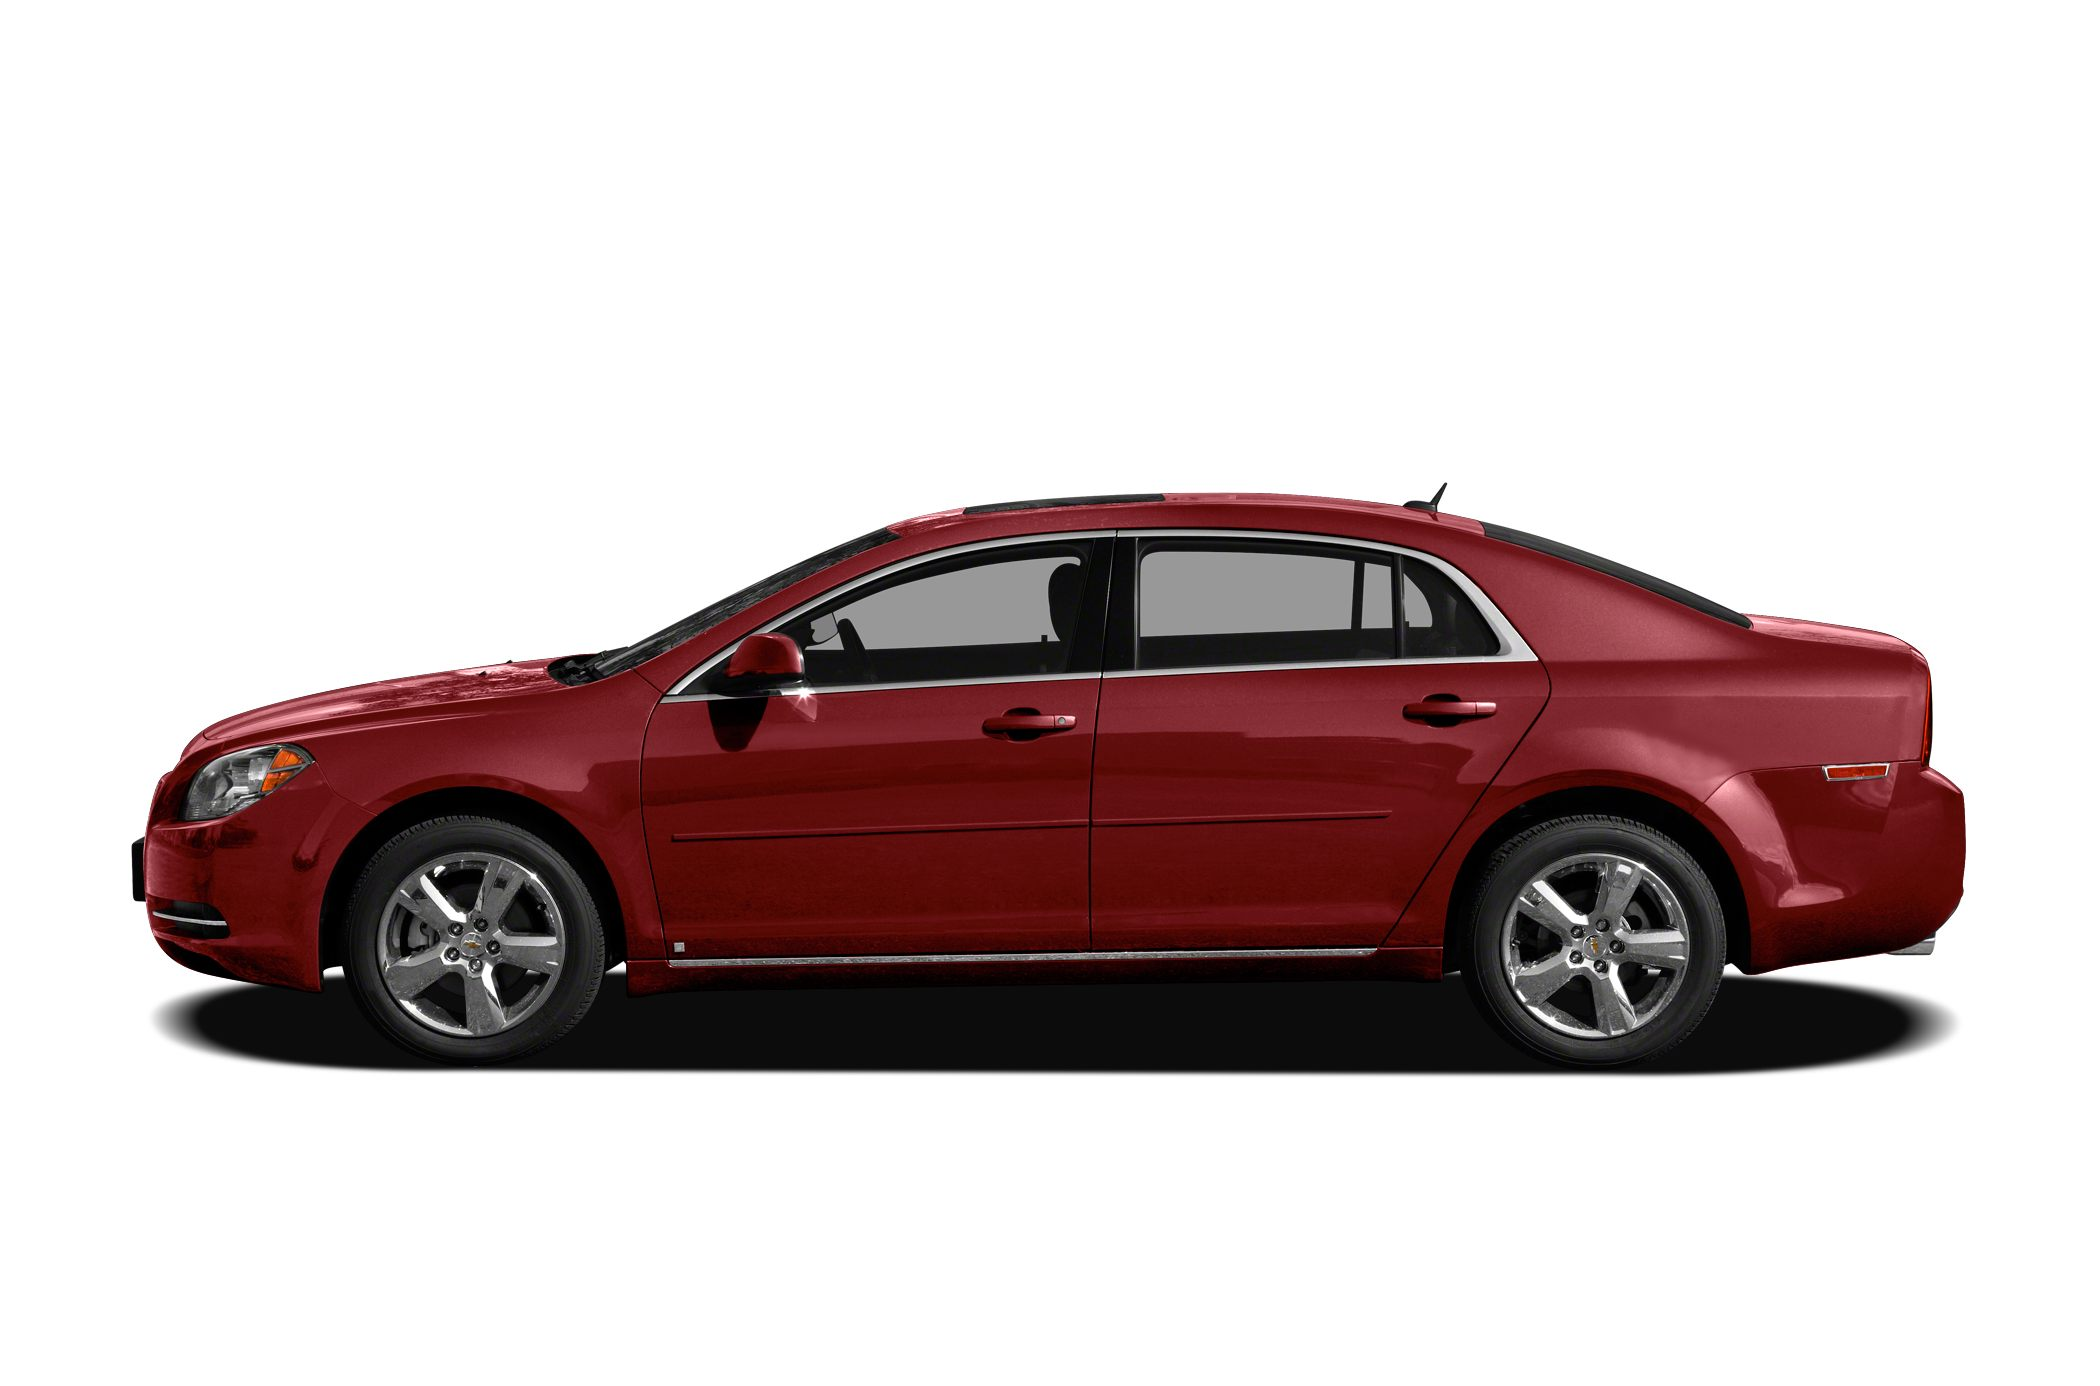 2012 chevrolet malibu ls w 1ls cars and vehicles victorville ca. Black Bedroom Furniture Sets. Home Design Ideas